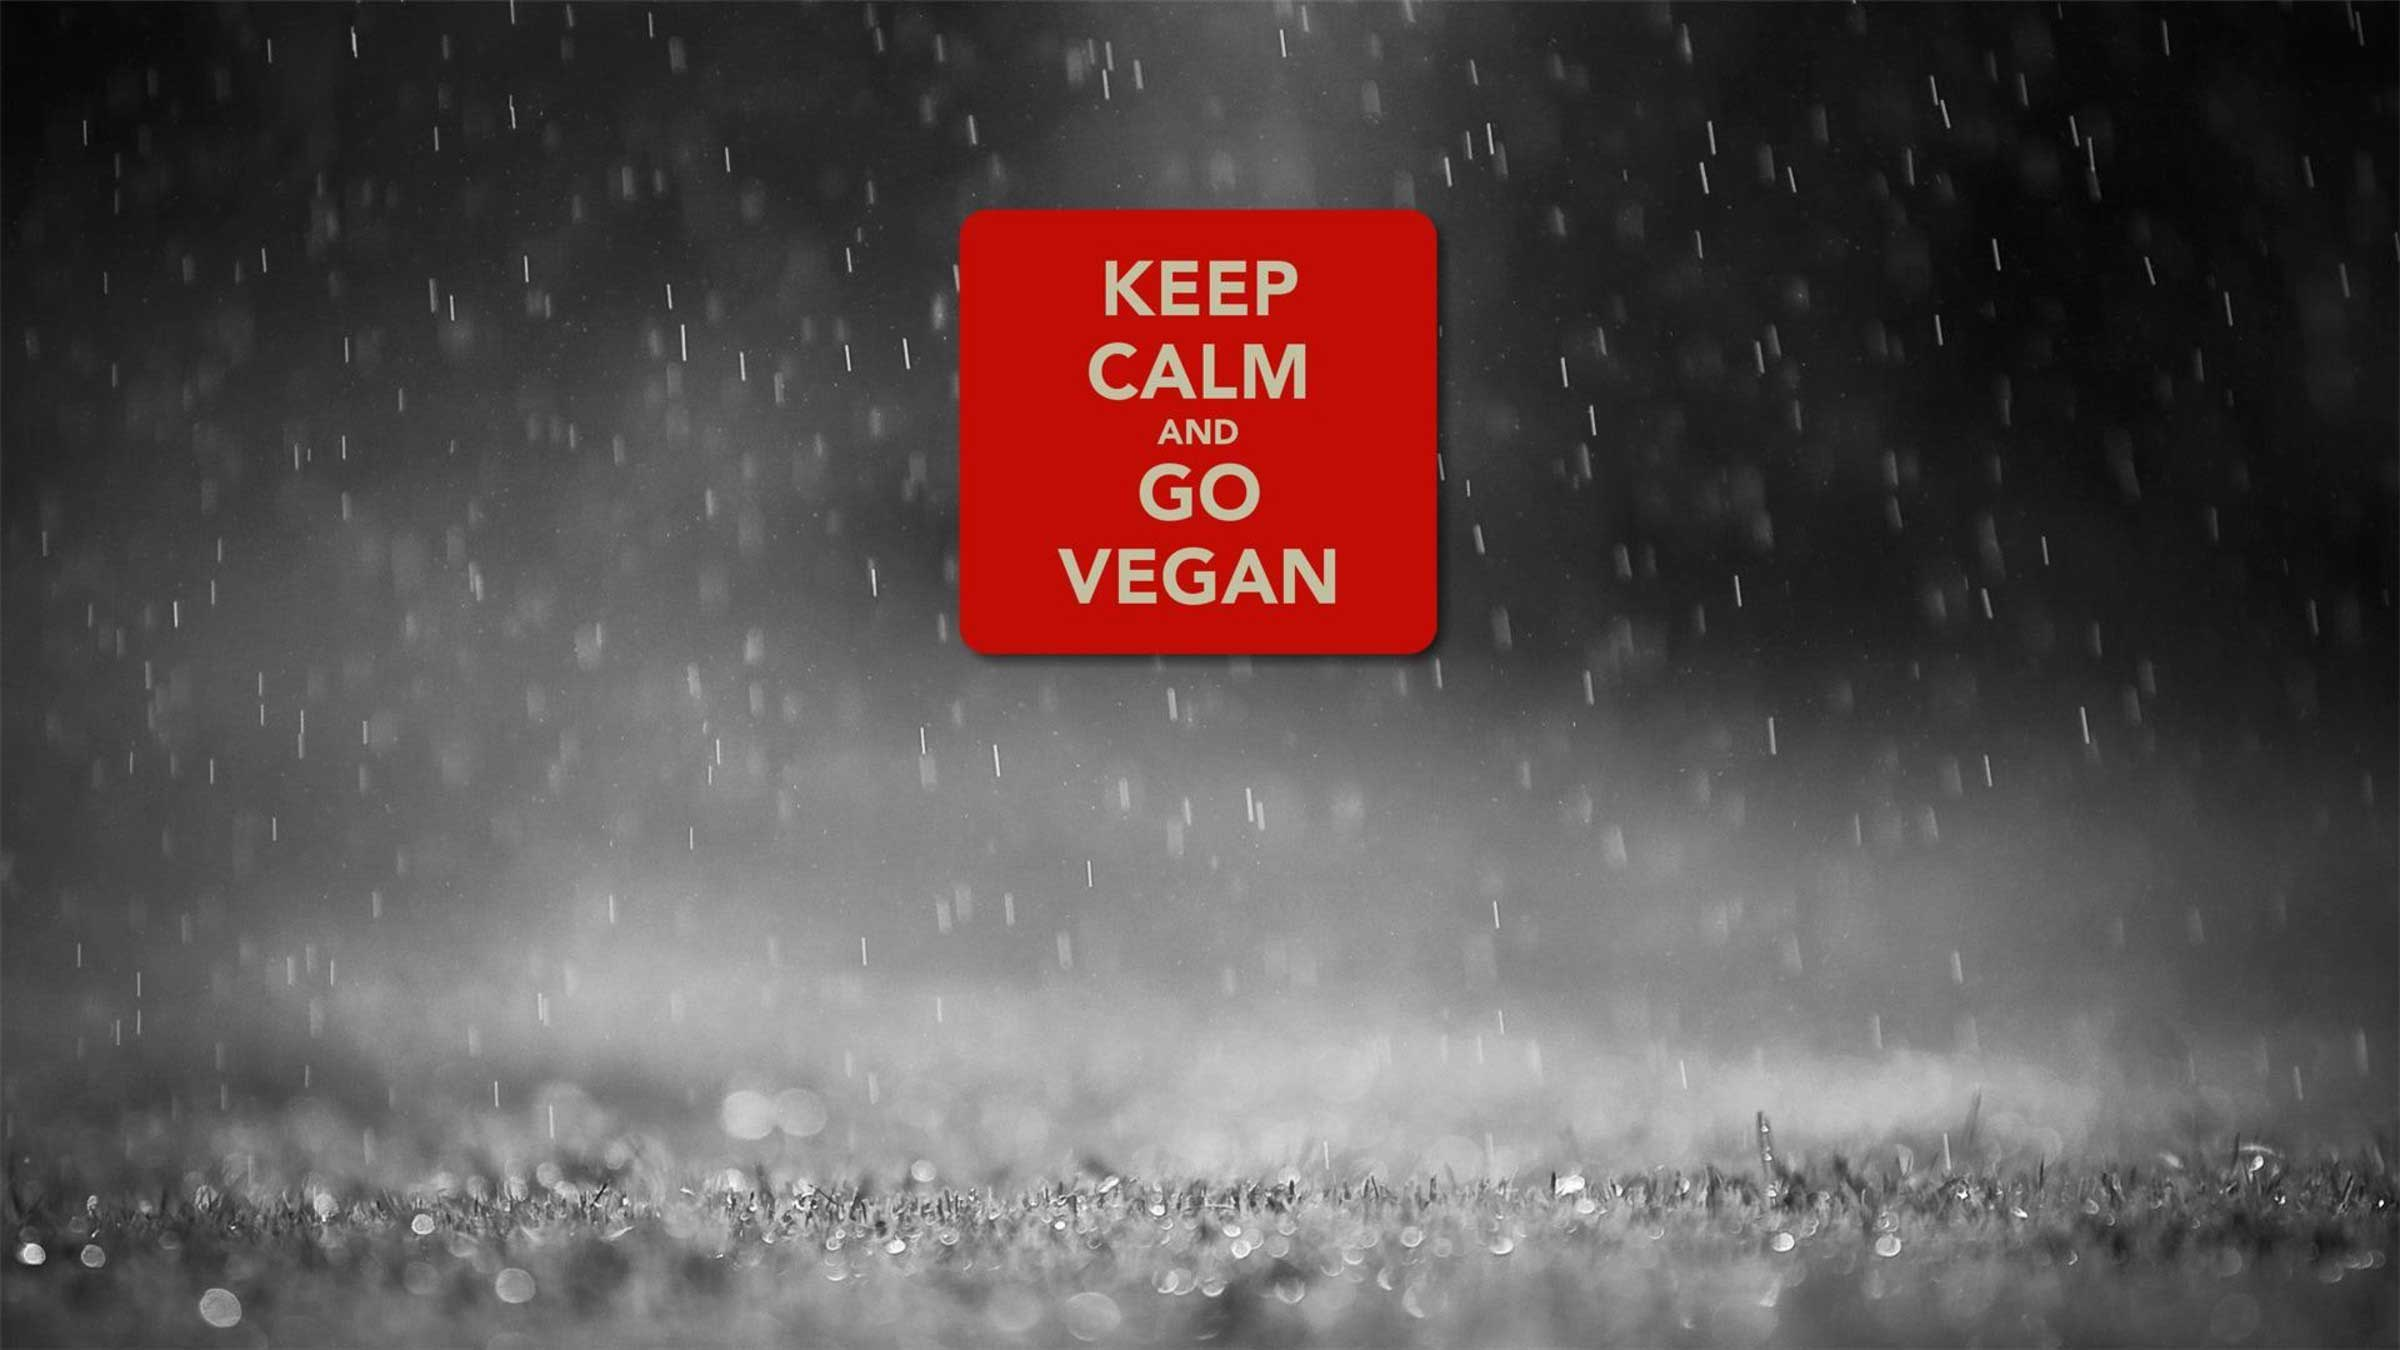 world vegetarian day text quotes go vegan image pc hd wallpaper